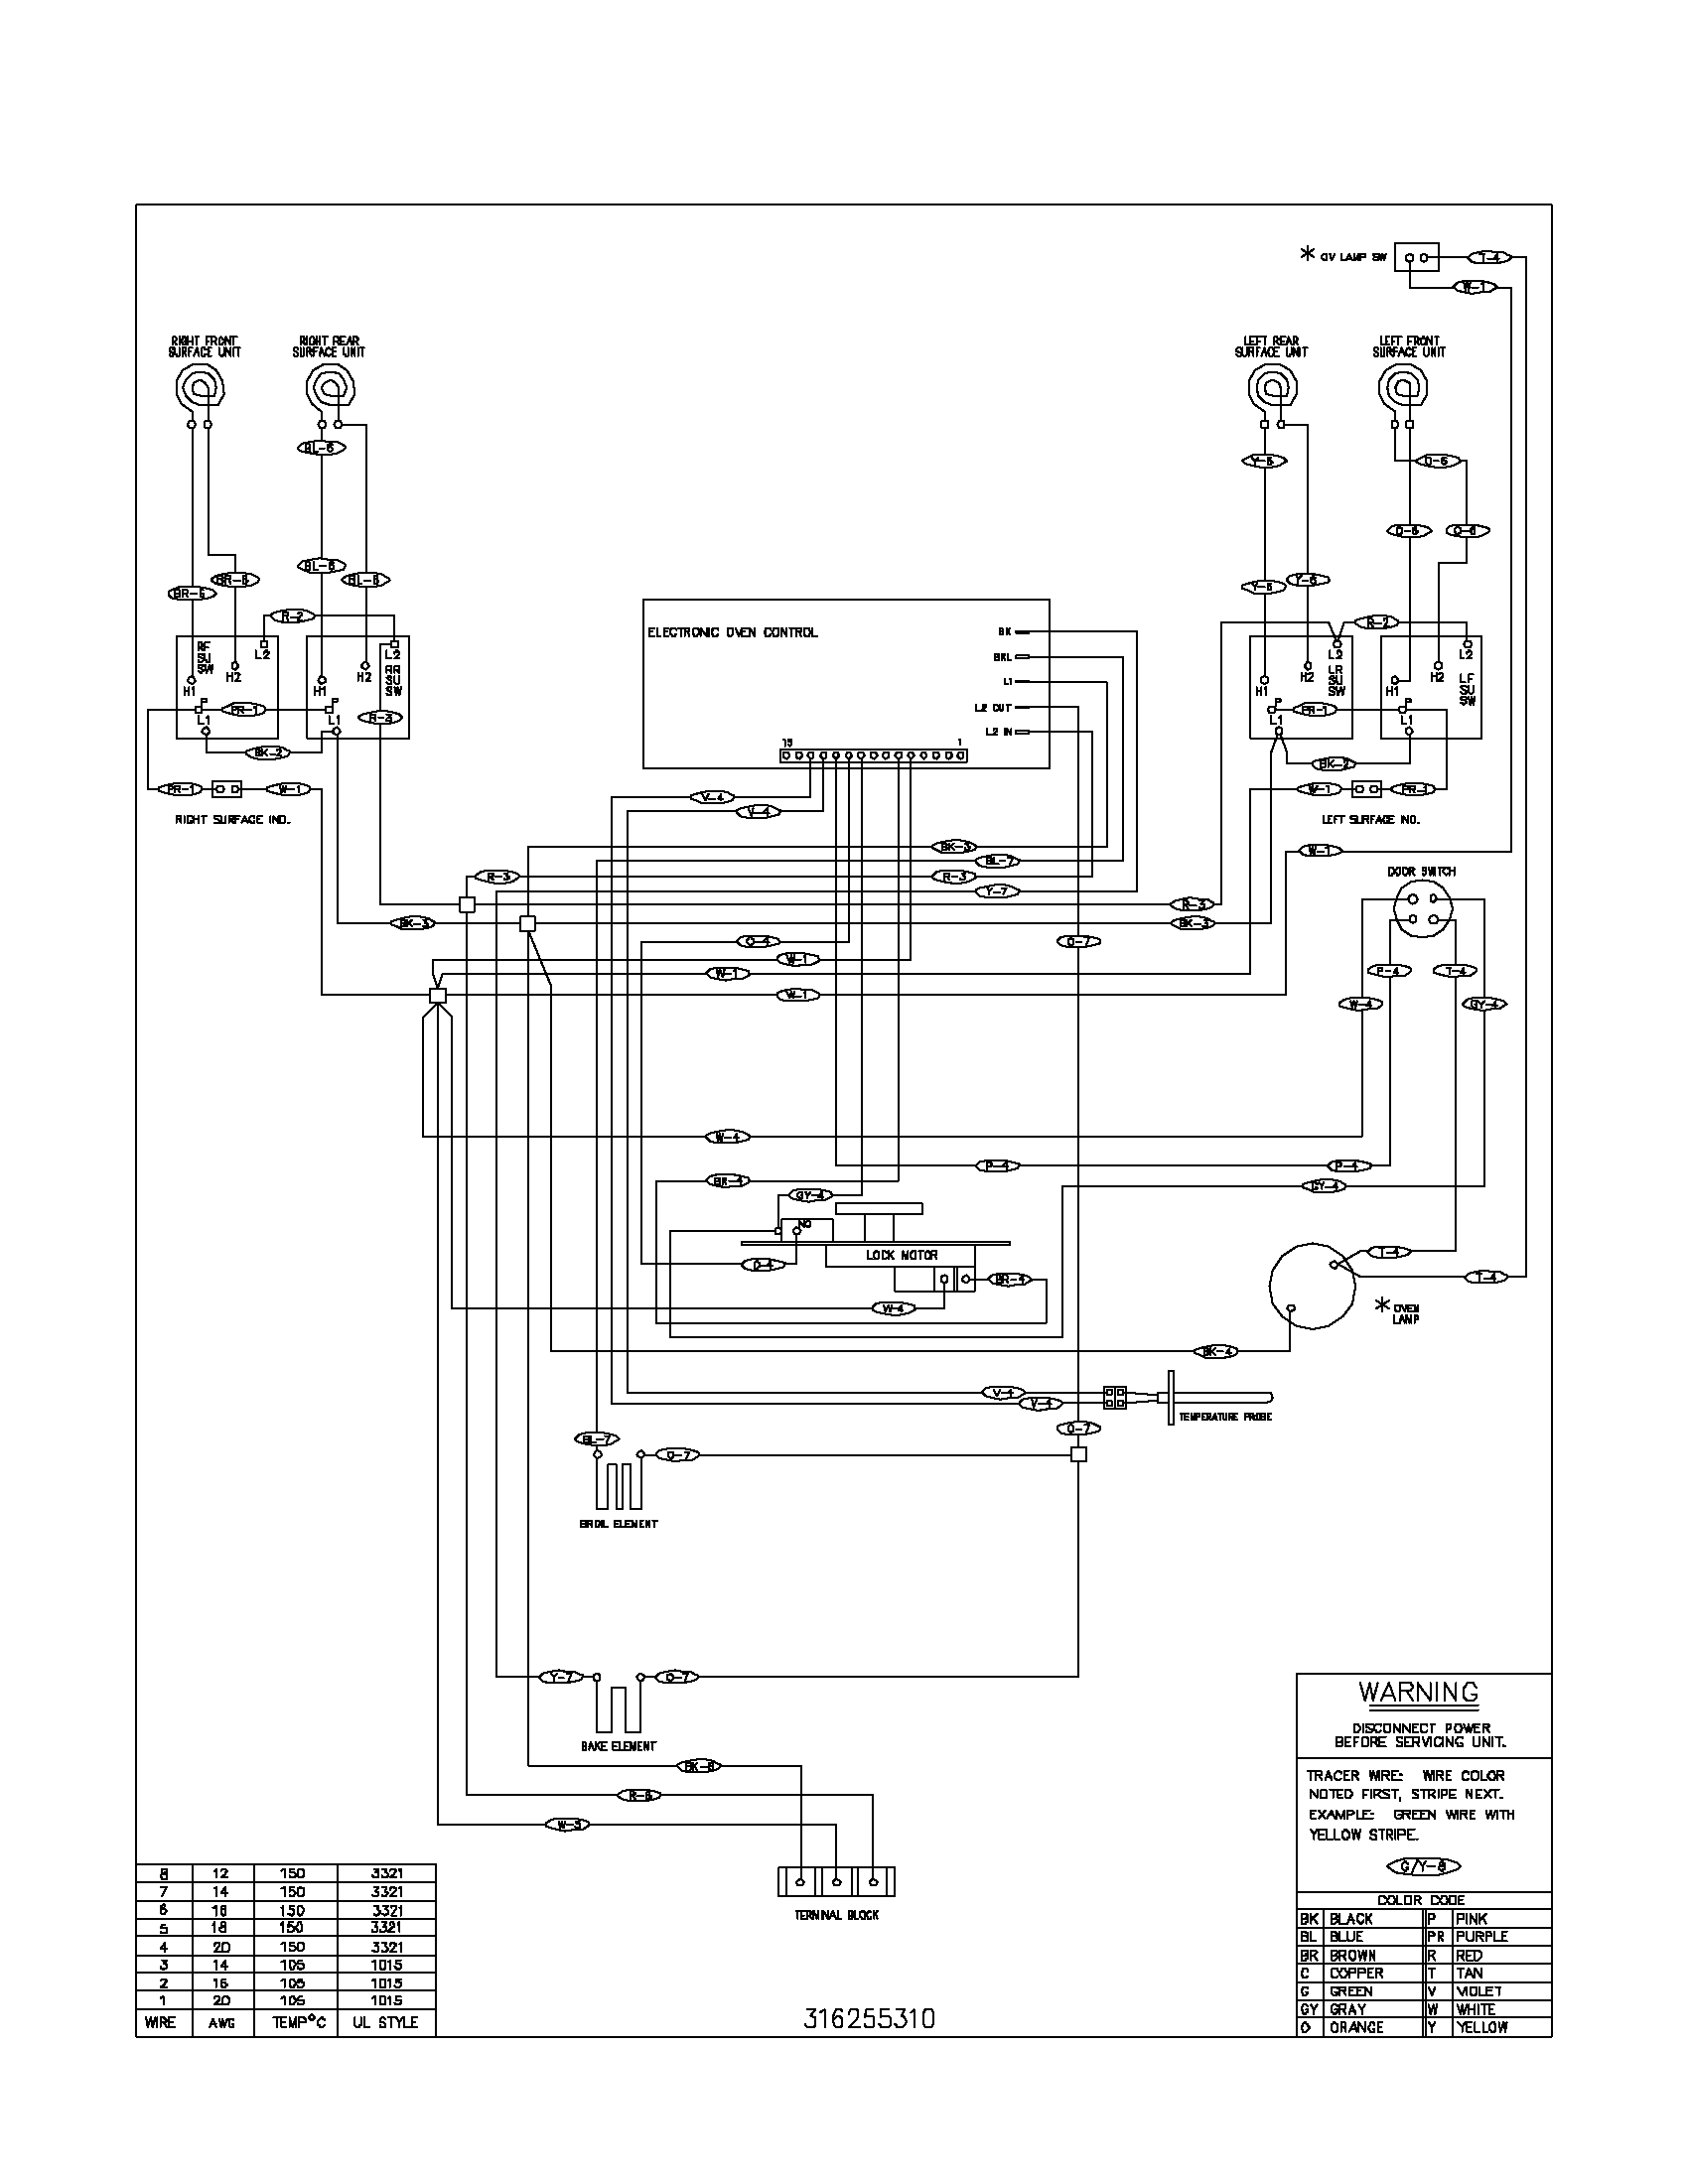 DIAGRAM] Electrolux Range Wiring Diagram FULL Version HD Quality Wiring  Diagram - CURCUITDIAGRAMS.CITTADIVITA.IT | Defy Stove Wiring Diagram |  | cittadivita.it